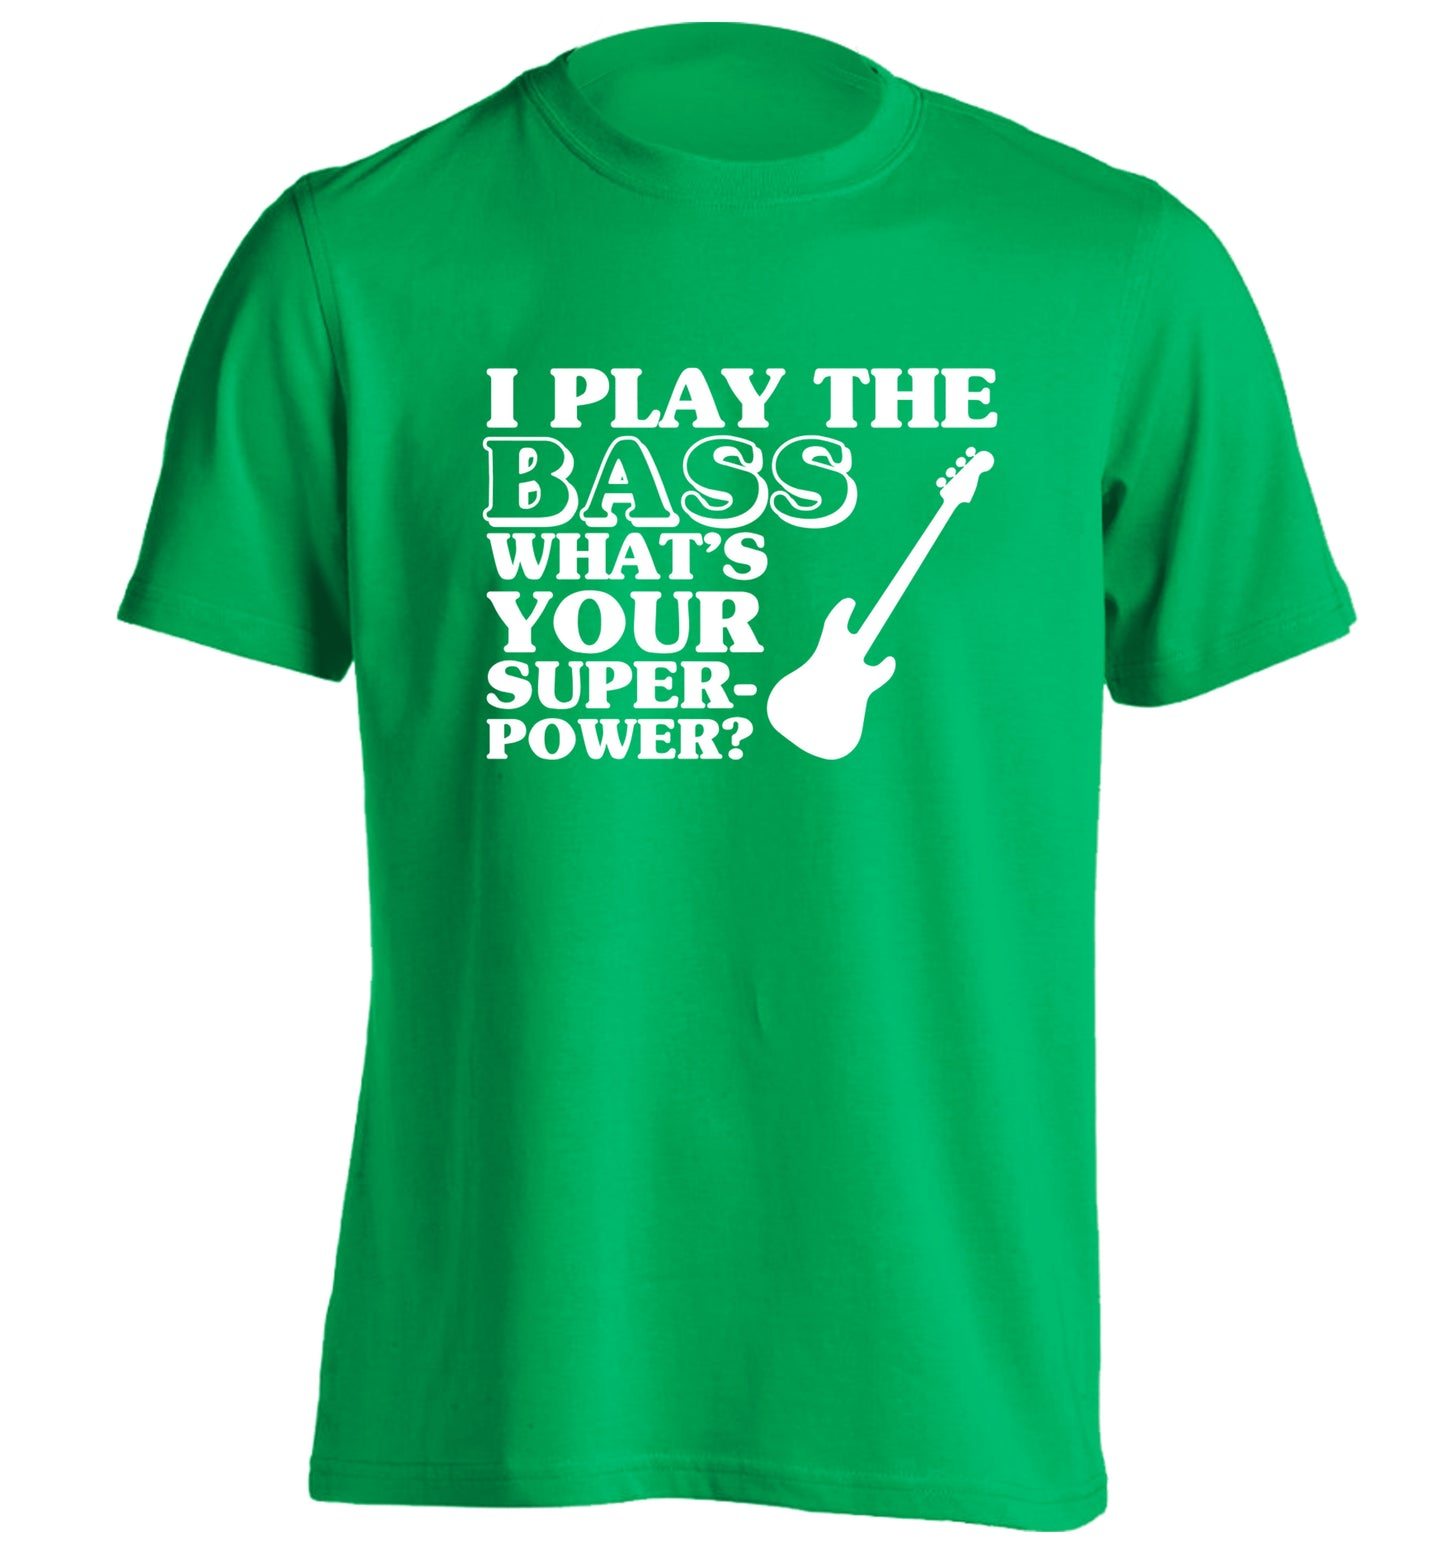 I play the bass what's your superpower? adults unisex green Tshirt 2XL